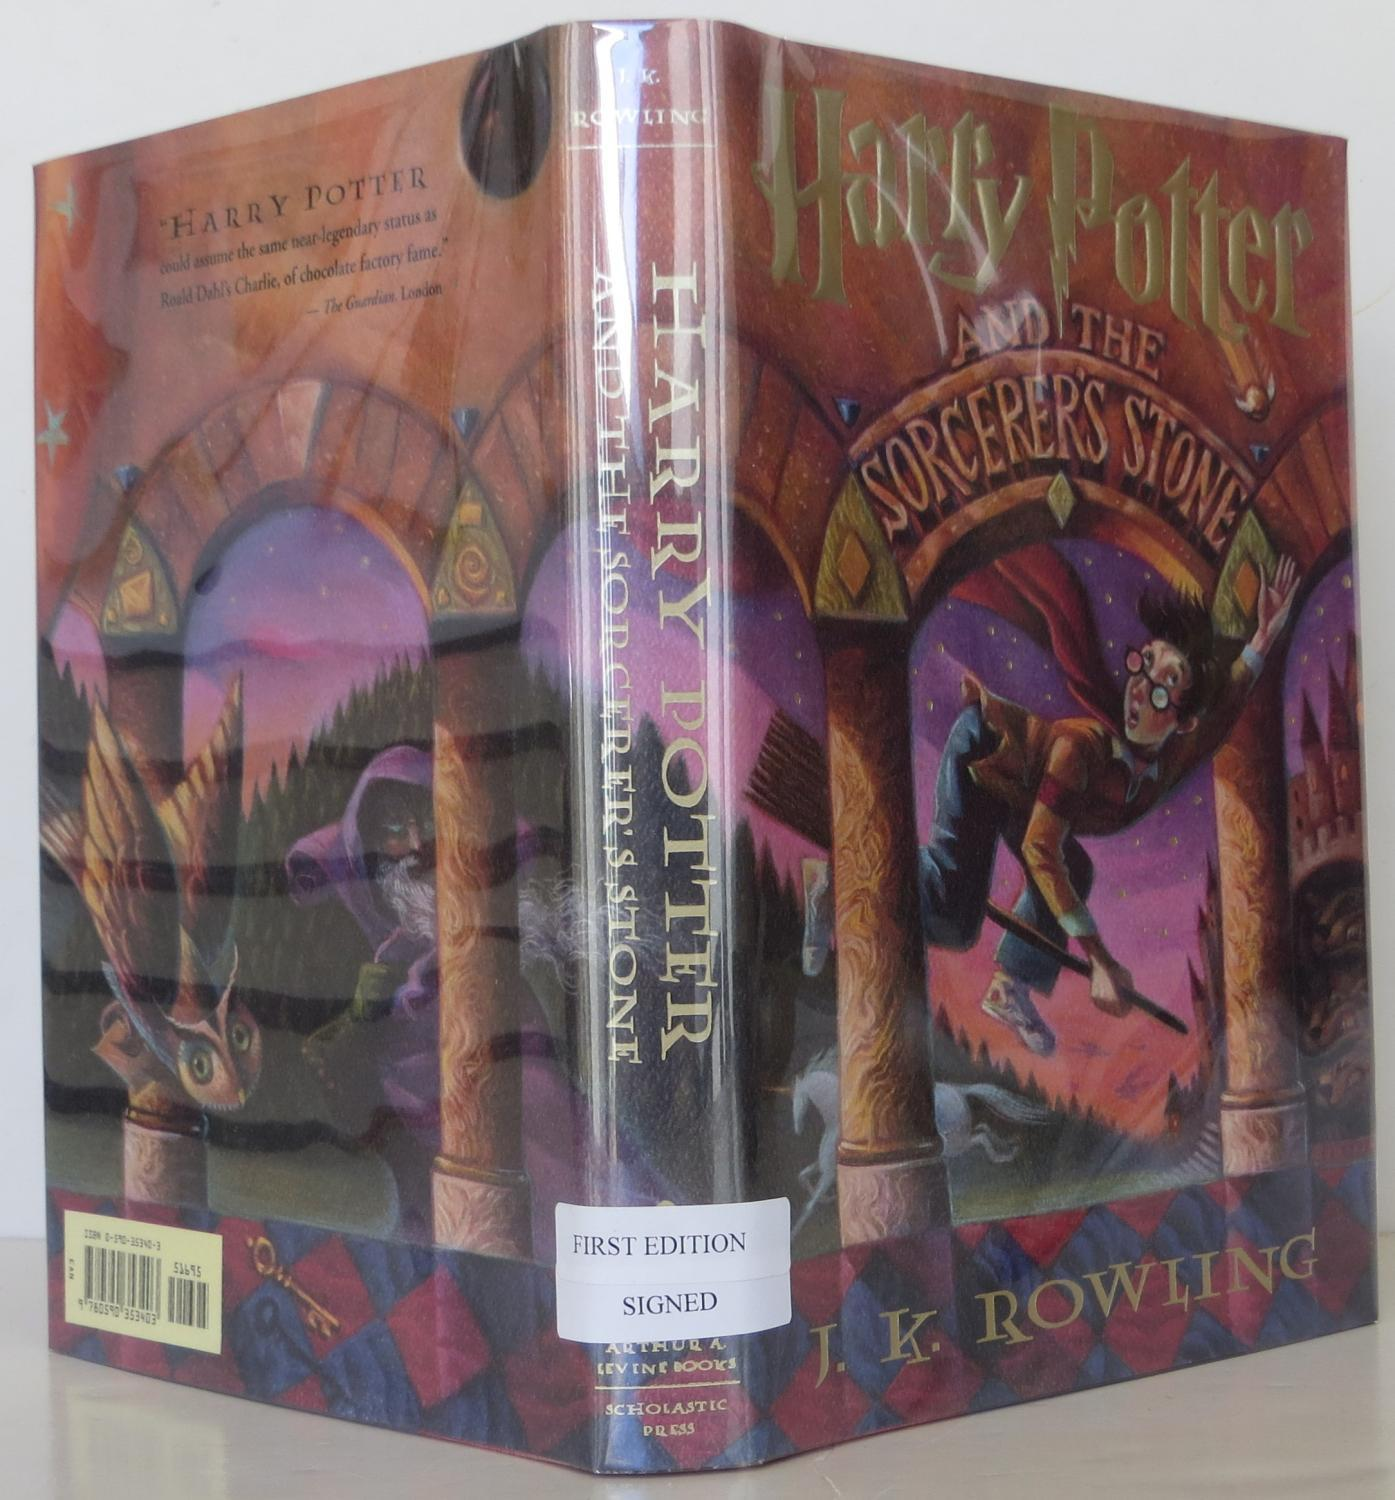 essay on harry potter and the sorcerer stone This book report is on the book harry potter and the sorcerer's stone, by jk rowling i would highly recommend this book to any reader, of any age it is exciting, intriguing, and action-packed, and never ceases to entertain.